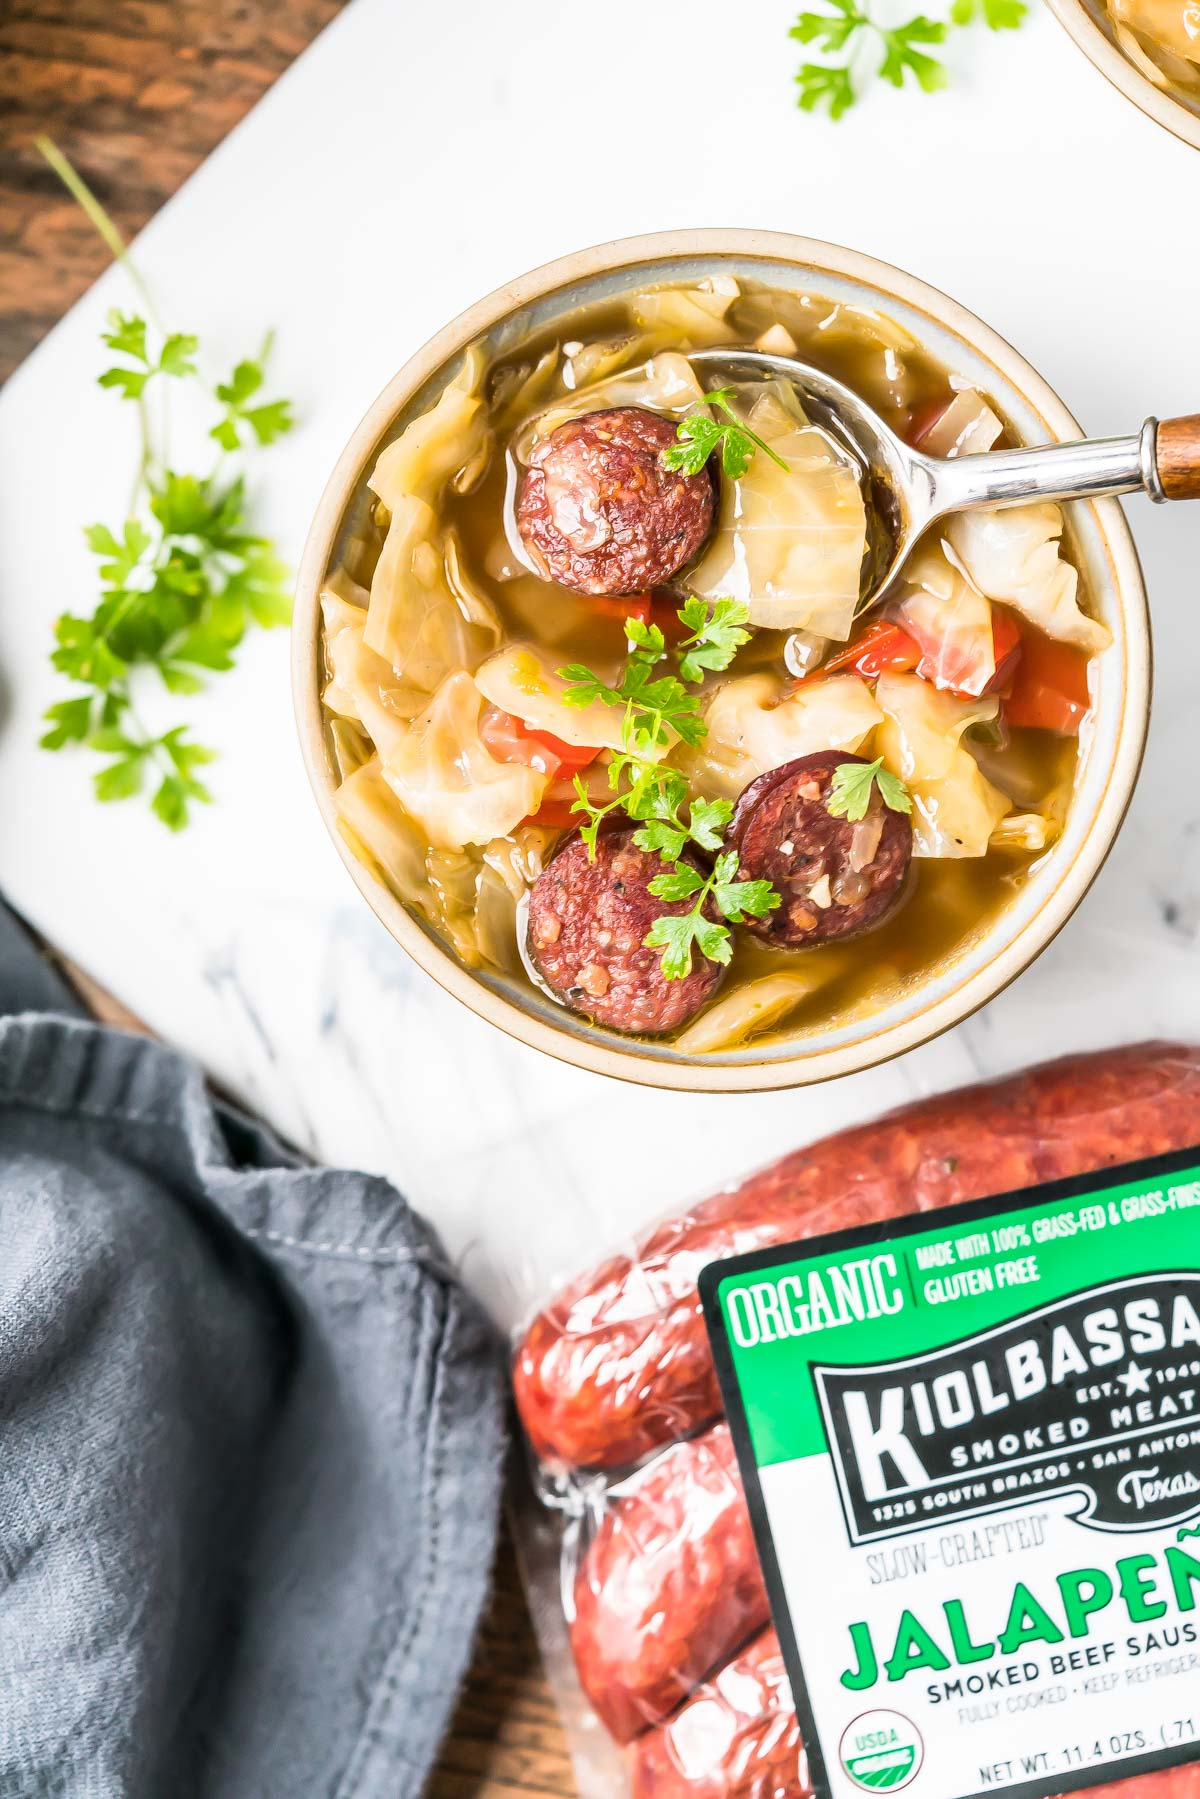 Keto Cabbage Soup in a bowl with a package of Kiolbassa smoked sausages sitting next to it